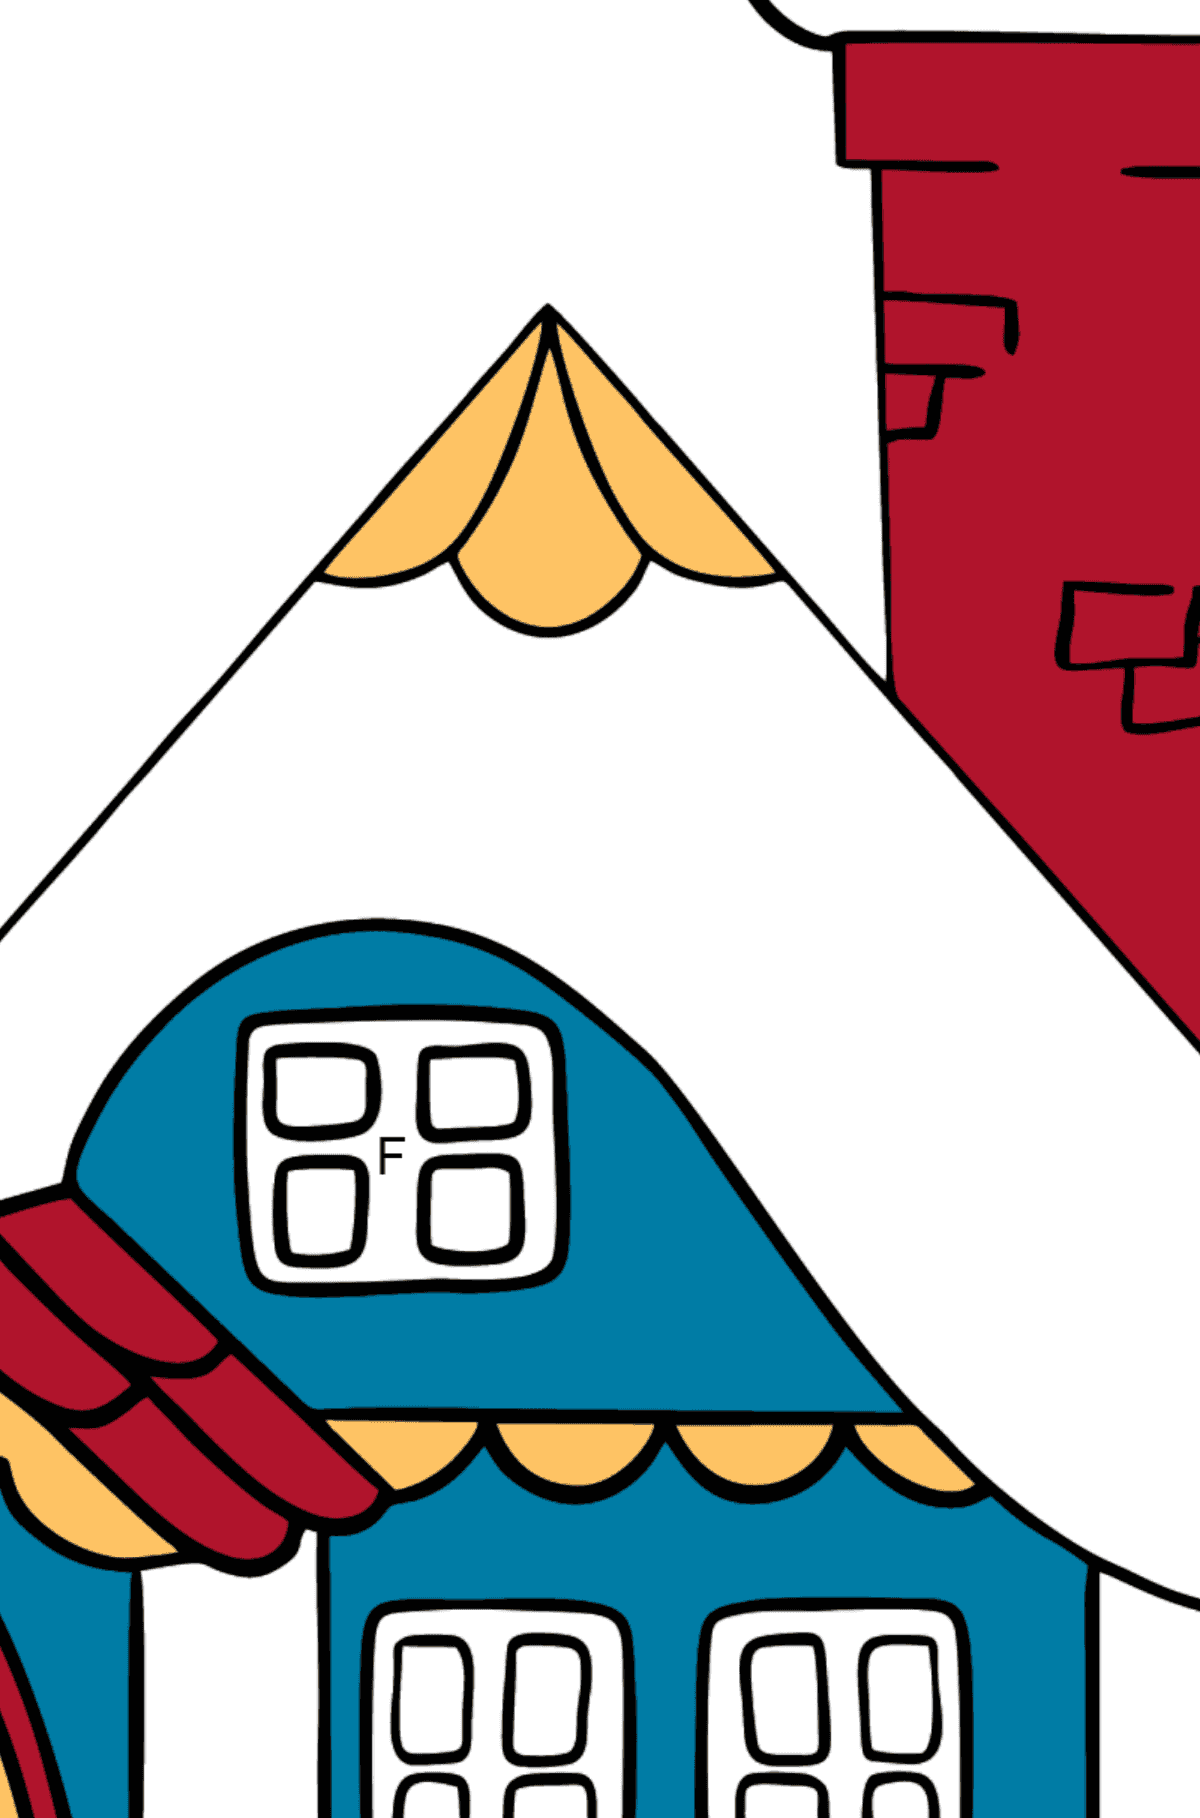 Simple Coloring Page - A Wonderful House - Coloring by Letters for Kids